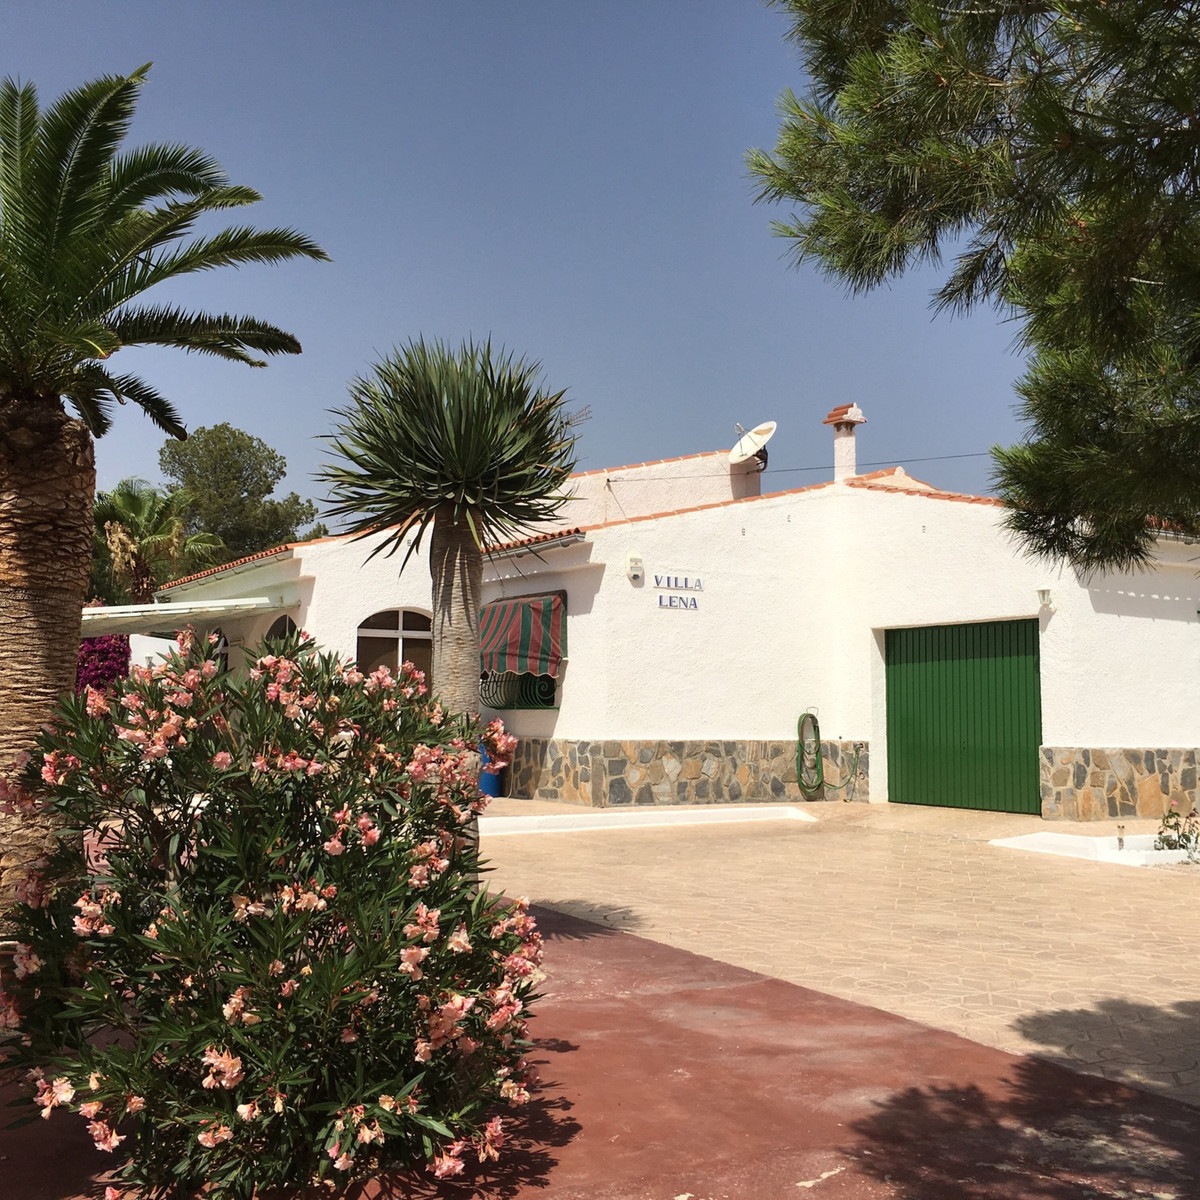 3 bedroom villa with private pool and garden in quiet, residential area, 15 minutes from local beach,Spain